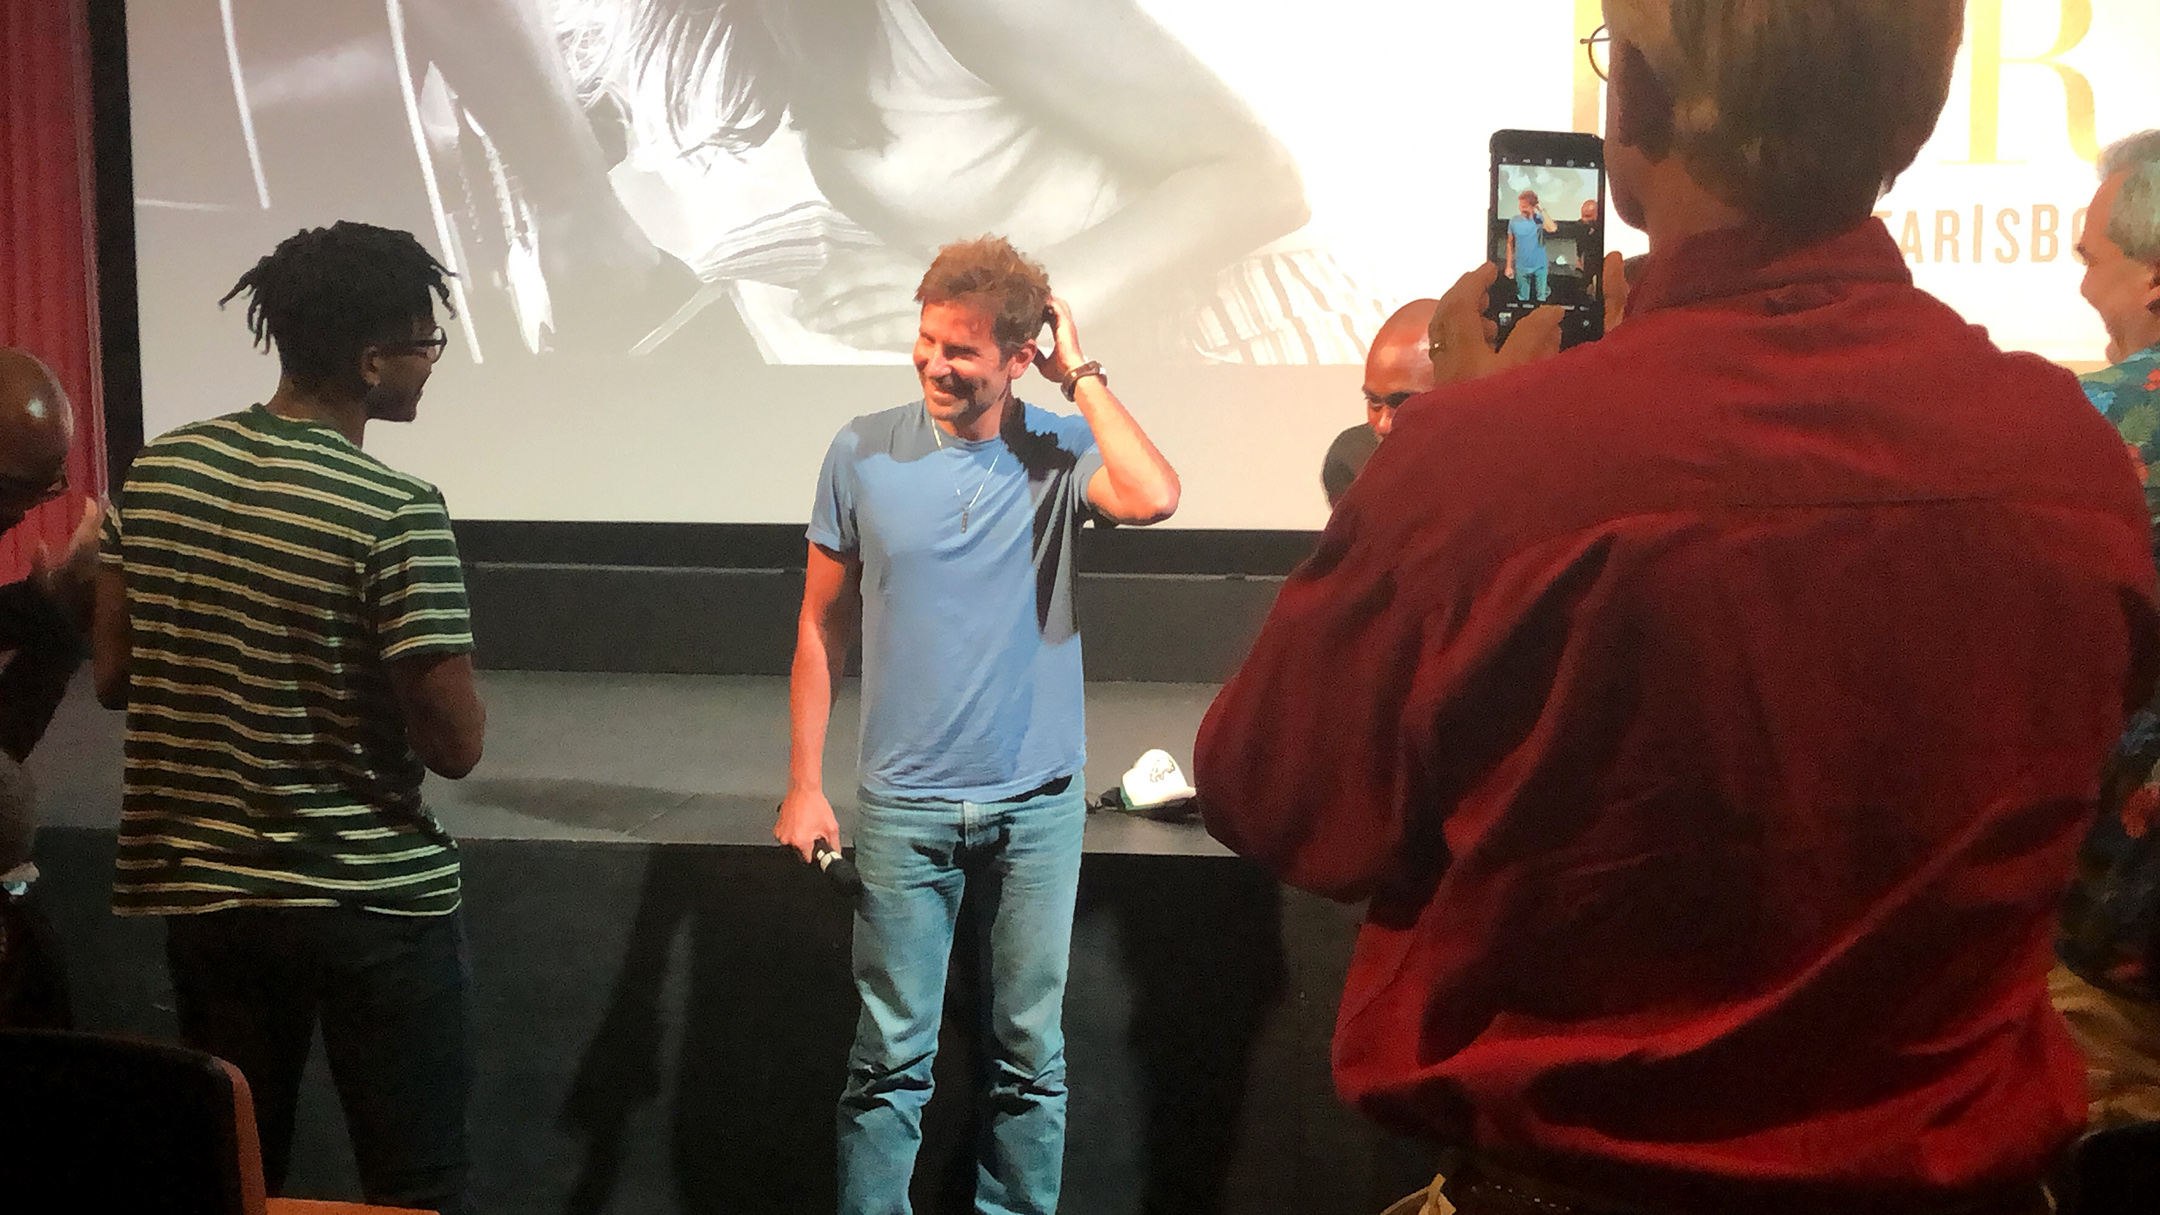 bradley cooper and dave chappelle screen a star is born in bradley cooper and dave chappelle